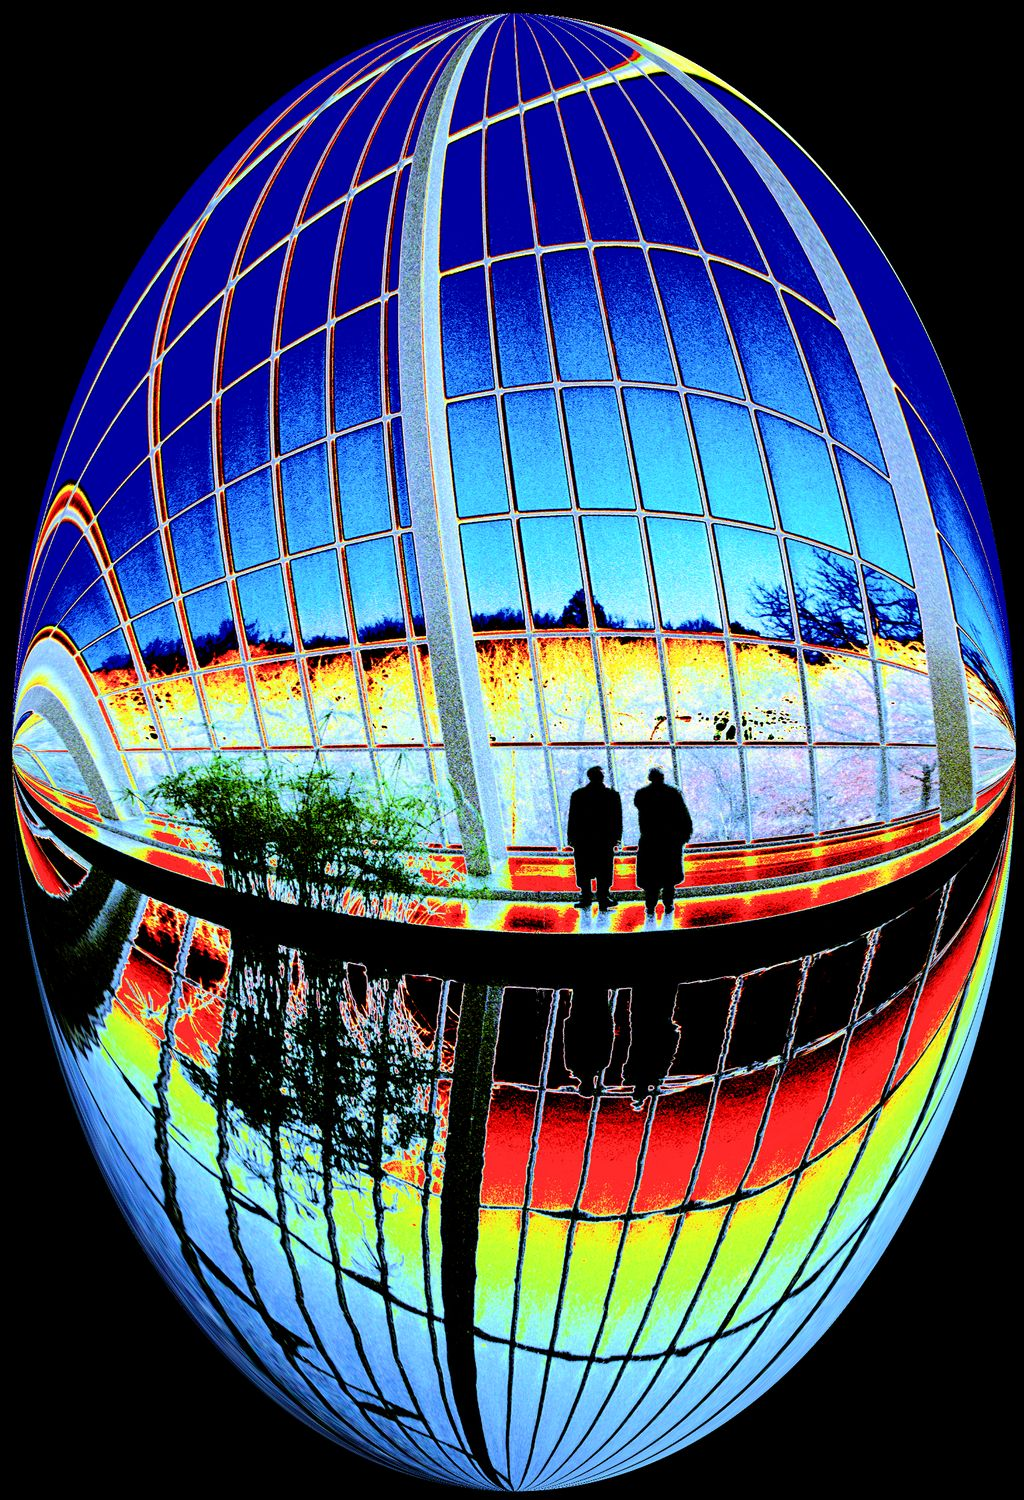 - Reagan and Gorbachev at the temple of Dendur -  Tony Karp's Bubble Pictures - From 1959 to 2013 - Tony Karp, design, art, photography, techno-impressionist, techno-impressionism, aerial photography , drone , drones , dji , mavic pro , video , 3D printing - Books -